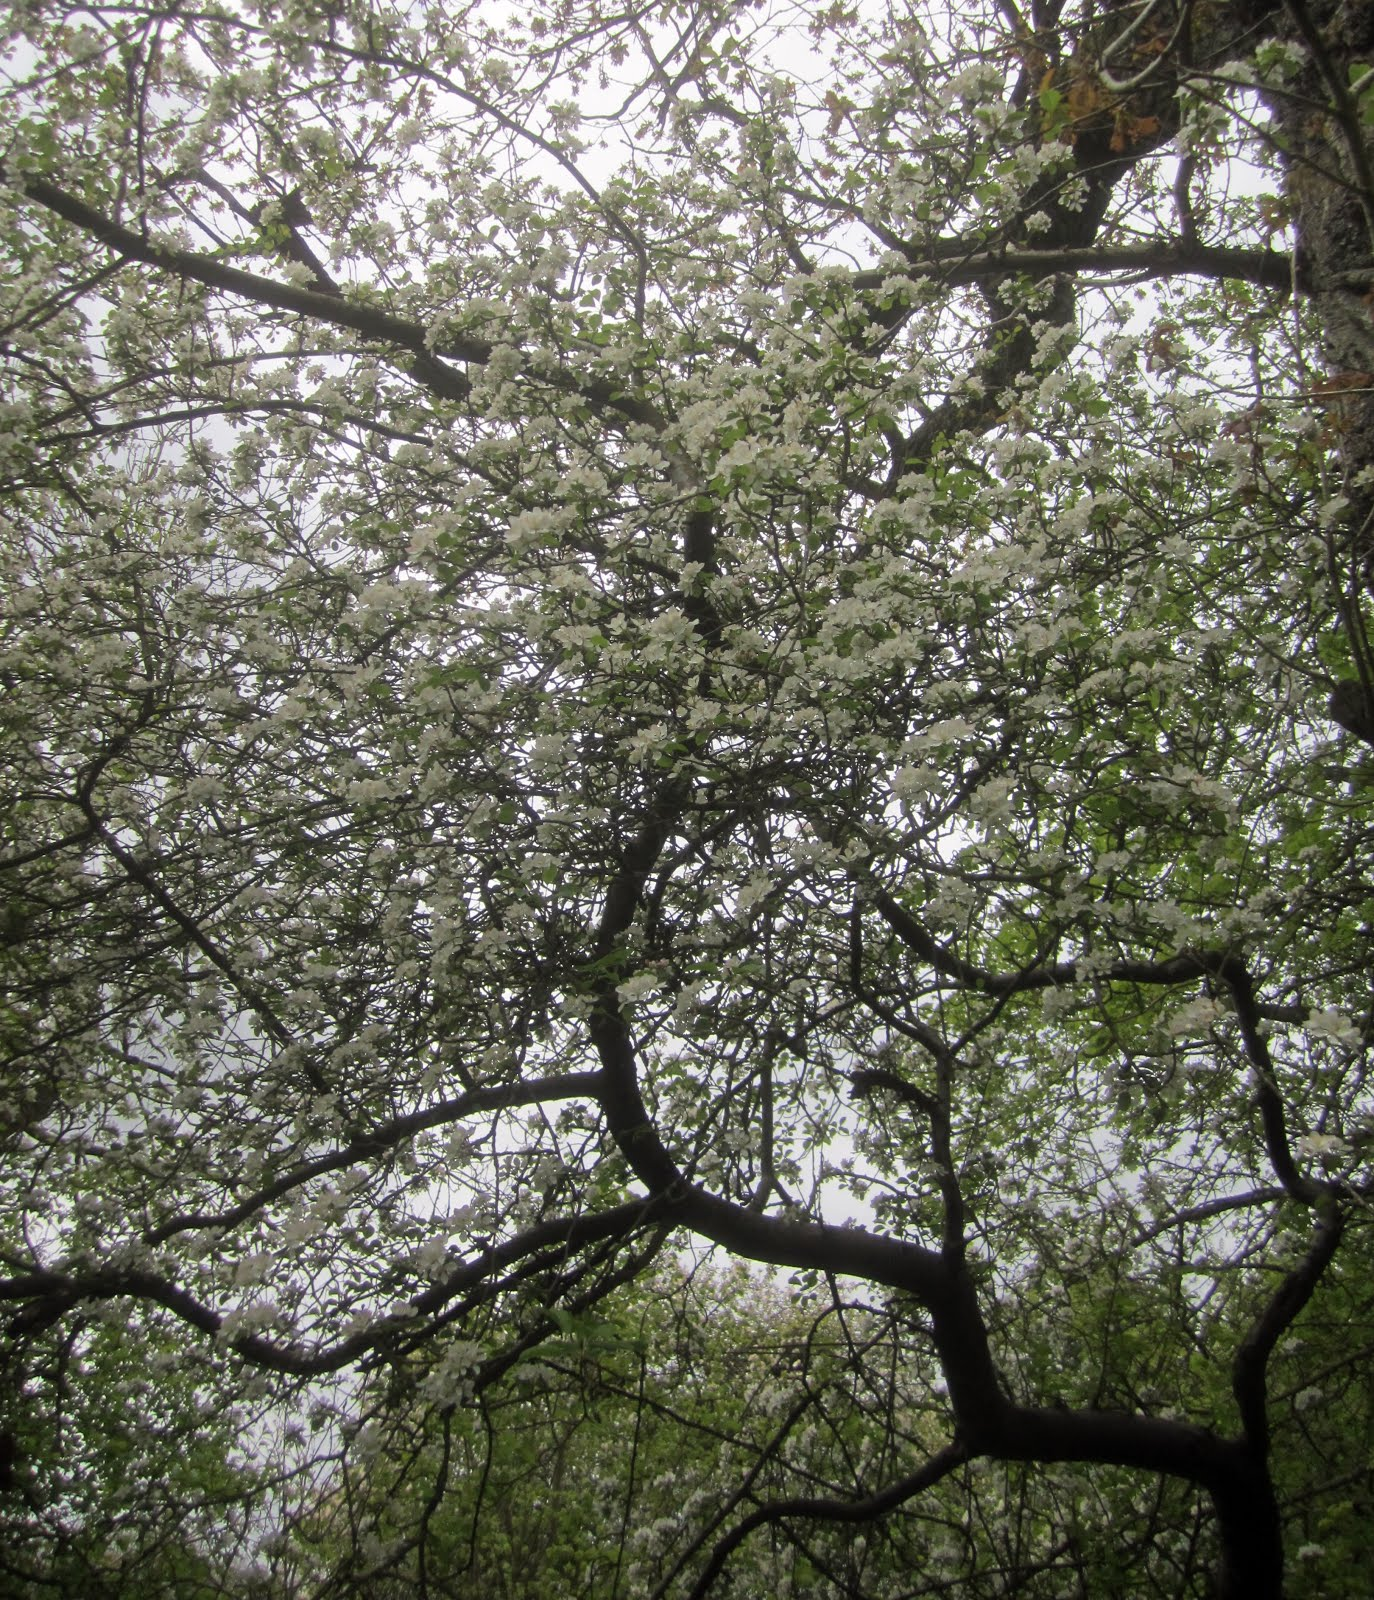 White crabapple canopy